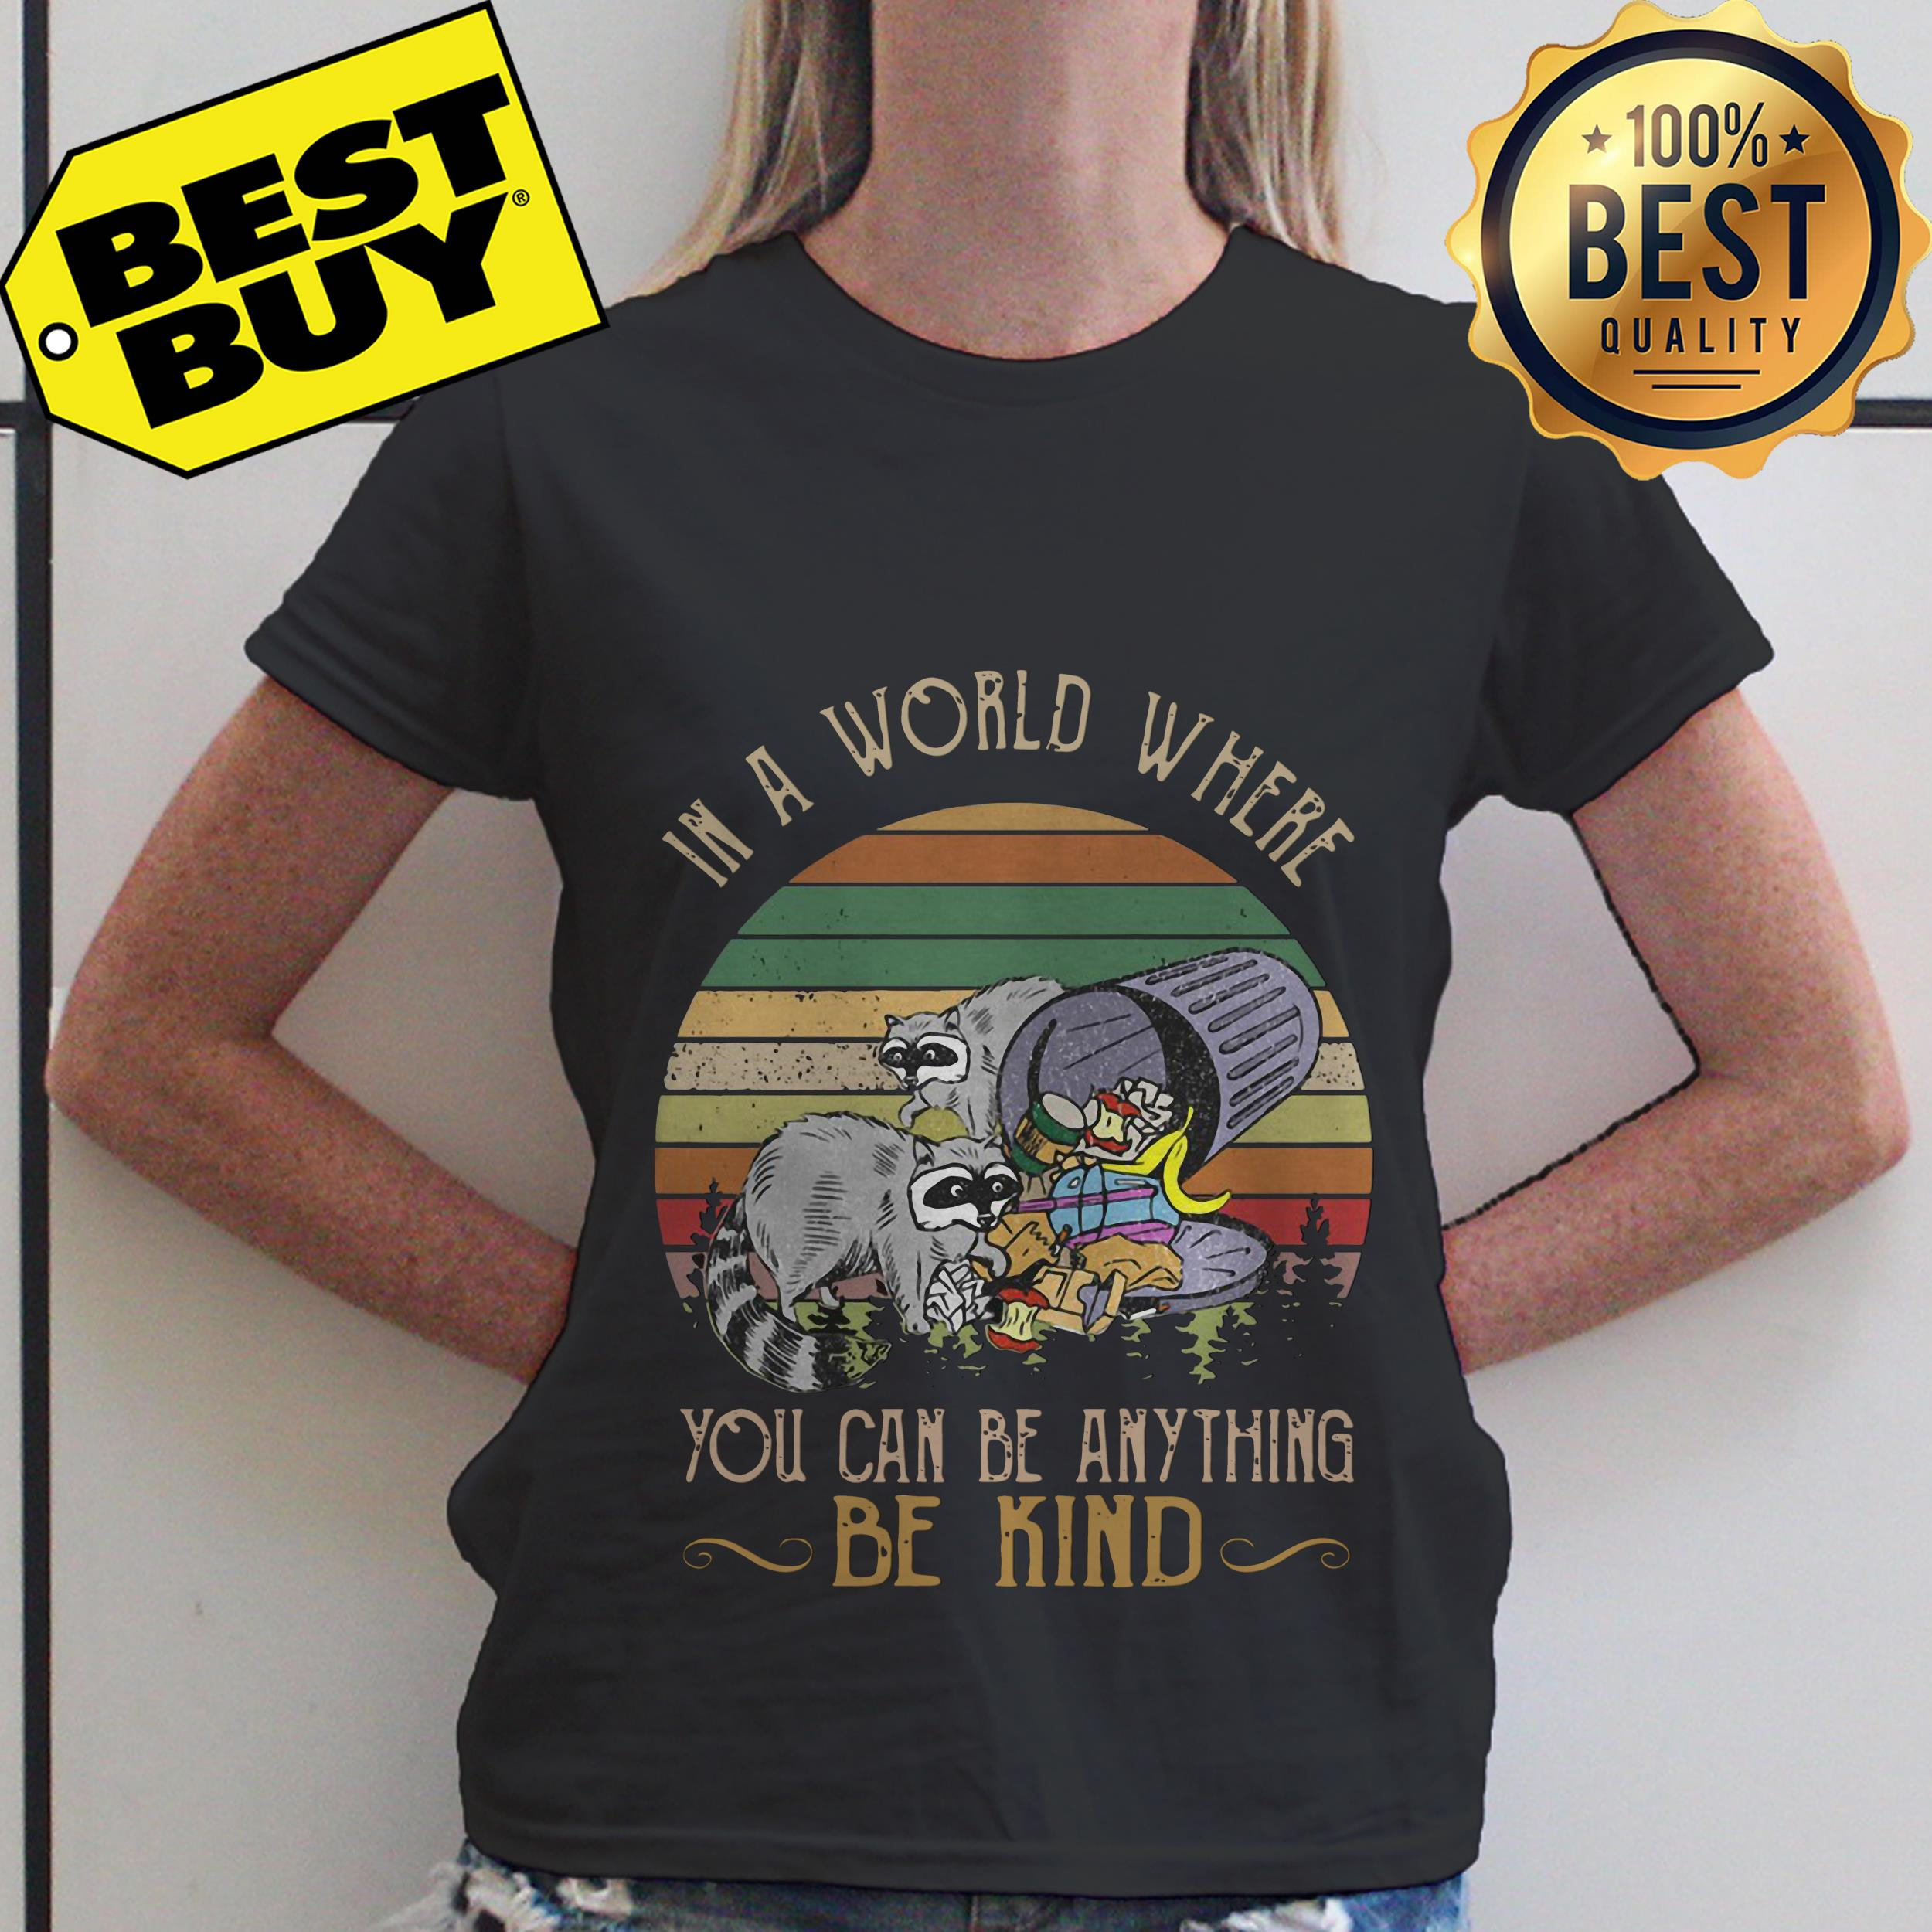 In a world where you can be anything be kind ladies tee